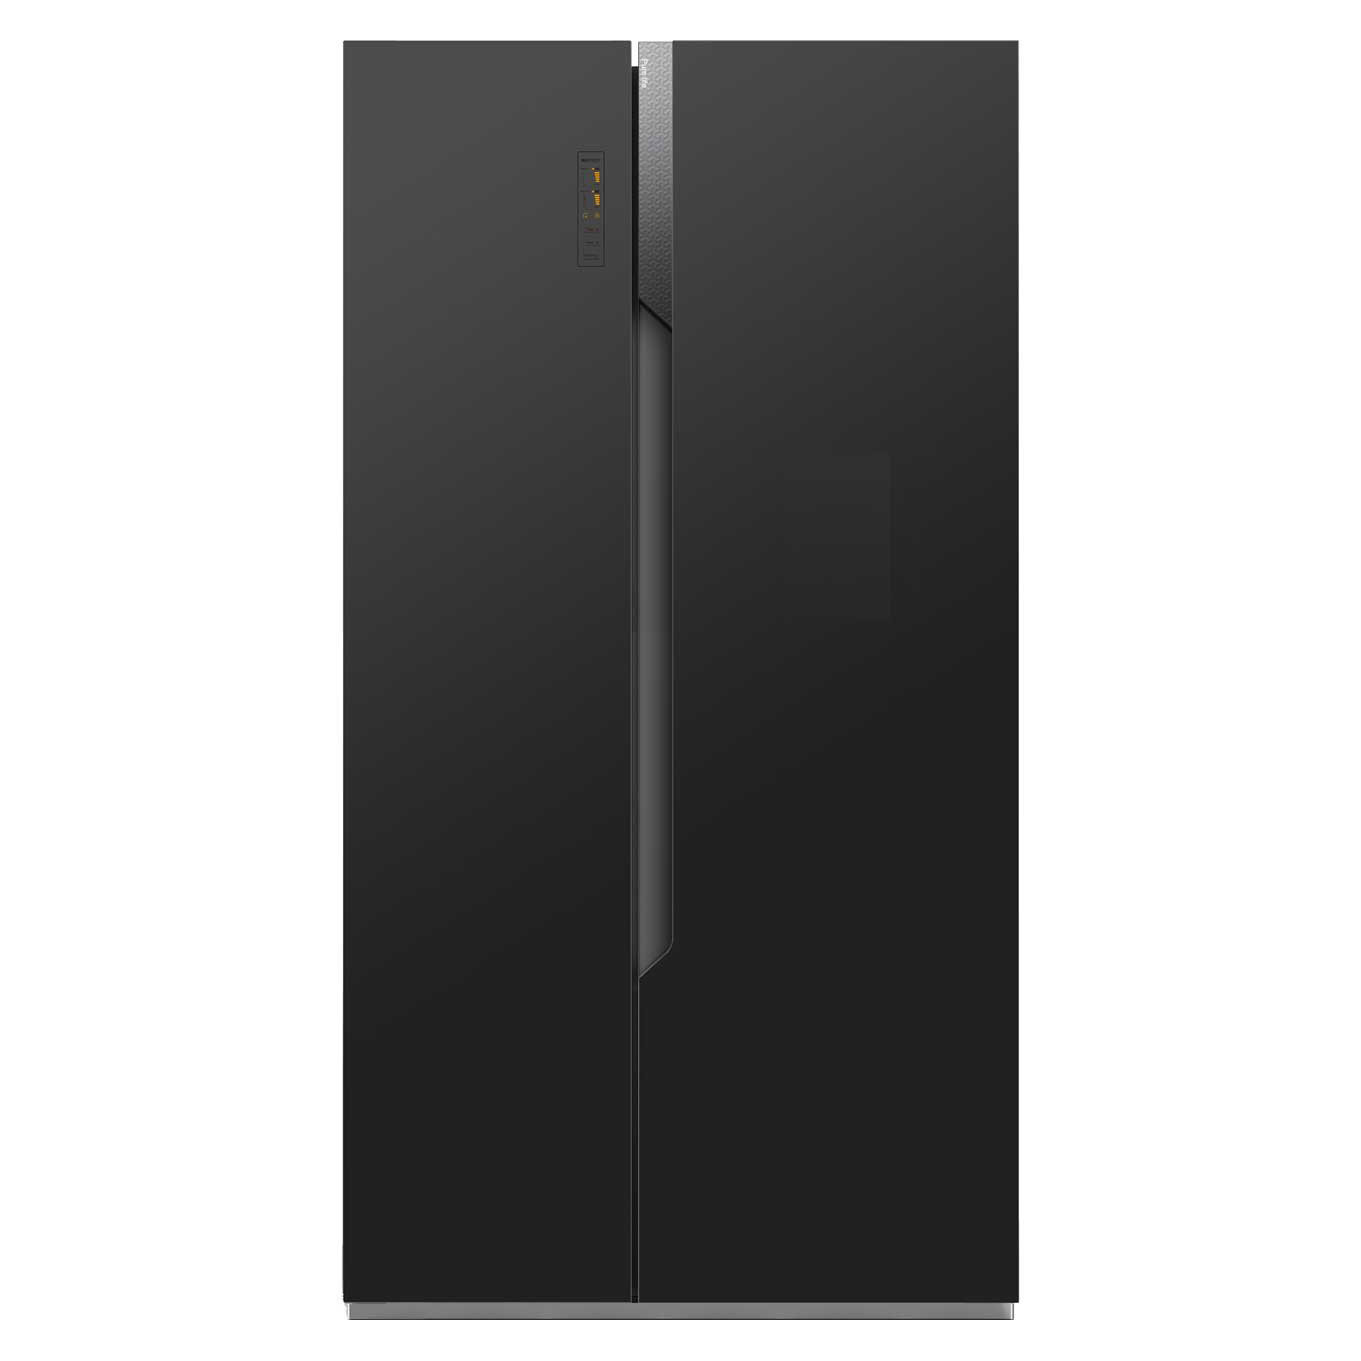 Fridgemaster Ms91518ffb American Style Fridge Freezer In